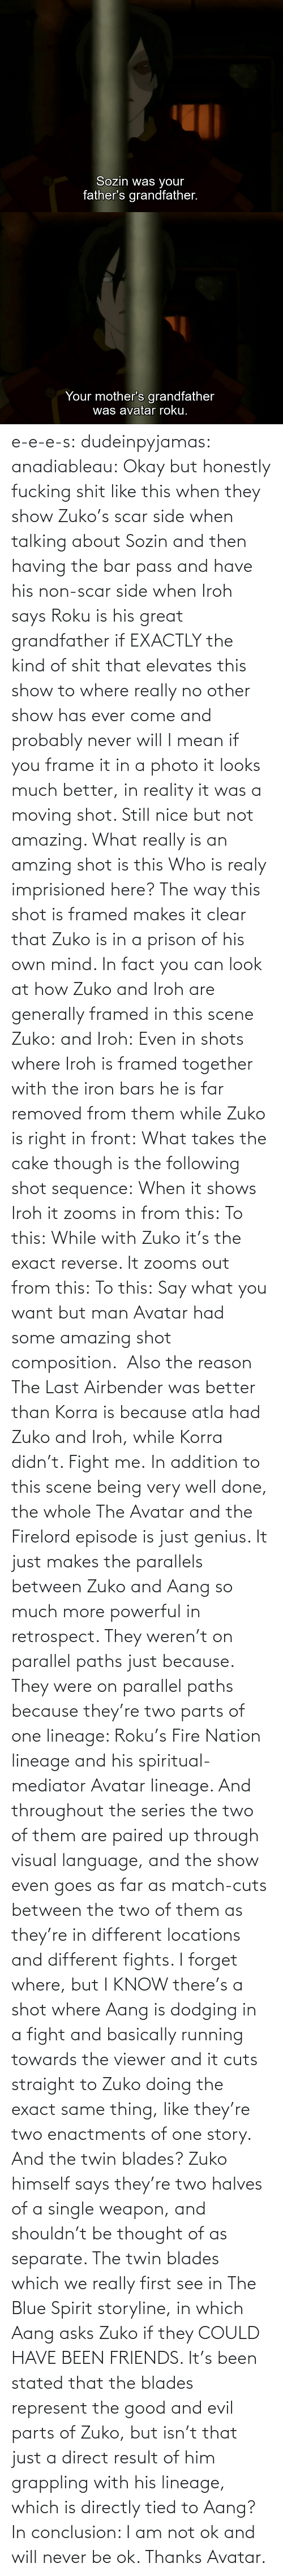 scene: e-e-e-s: dudeinpyjamas:   anadiableau: Okay but honestly fucking shit like this when they show Zuko's scar side when talking about Sozin and then having the bar pass and have his non-scar side when Iroh says Roku is his great grandfather if EXACTLY the kind of shit that elevates this show to where really no other show has ever come and probably never will I mean if you frame it in a photo it looks much better, in reality it was a moving shot. Still nice but not amazing. What really is an amzing shot is this Who is realy imprisioned here? The way this shot is framed makes it clear that Zuko is in a prison of his own mind. In fact you can look at how Zuko and Iroh are generally framed in this scene Zuko: and Iroh: Even in shots where Iroh is framed together with the iron bars he is far removed from them while Zuko is right in front:  What takes the cake though is the following shot sequence: When it shows Iroh it zooms in from this: To this: While with Zuko it's the exact reverse. It zooms out from this: To this: Say what you want but man Avatar had some amazing shot composition.   Also the reason The Last Airbender was better than Korra is because atla had Zuko and Iroh, while Korra didn't. Fight me.    In addition to this scene being very well done, the whole The Avatar and the Firelord episode is just genius.  It just makes the parallels between Zuko and Aang so much more powerful in retrospect.  They weren't on parallel paths just because.  They were on parallel paths because they're two parts of one lineage: Roku's Fire Nation lineage and his spiritual-mediator Avatar lineage.  And throughout the series the two of them are paired up through visual language, and the show even goes as far as match-cuts between the two of them as they're in different locations and different fights.  I forget where, but I KNOW there's a shot where Aang is dodging in a fight and basically running towards the viewer and it cuts straight to Zuko doing the exact same thing, like they're two enactments of one story.   And the twin blades?  Zuko himself says they're two halves of a single weapon, and shouldn't be thought of as separate.  The twin blades which we really first see in The Blue Spirit storyline, in which Aang asks Zuko if they COULD HAVE BEEN FRIENDS.  It's been stated that the blades represent the good and evil parts of Zuko, but isn't that just a direct result of him grappling with his lineage, which is directly tied to Aang? In conclusion: I am not ok and will never be ok.  Thanks Avatar.